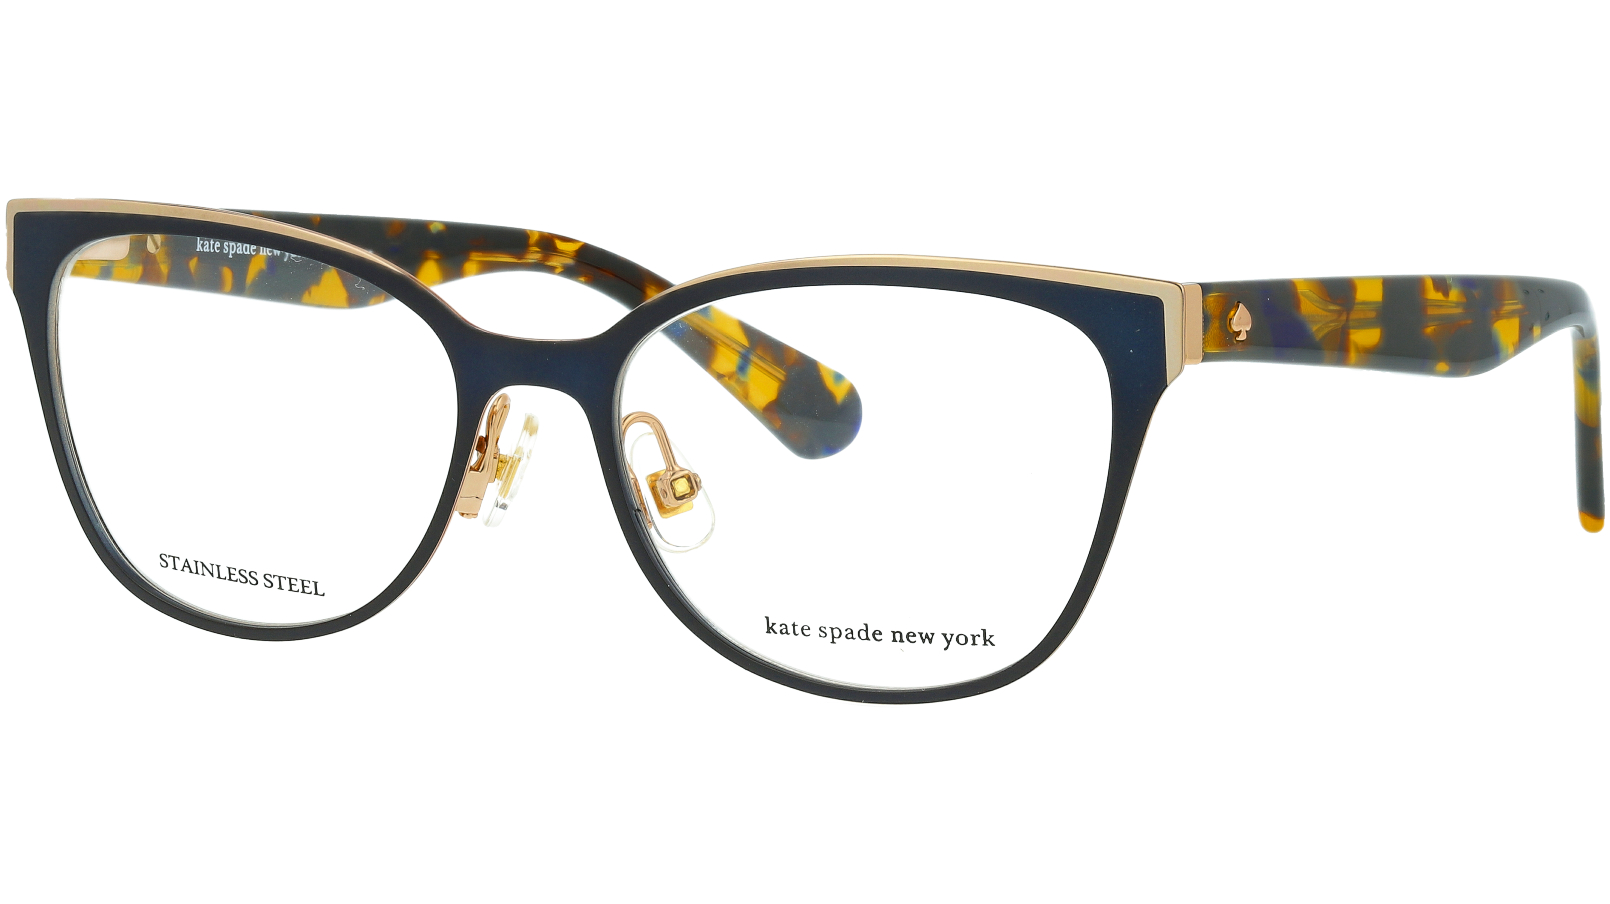 KATE SPADE VANDRA JBW 52 BLUE Glasses